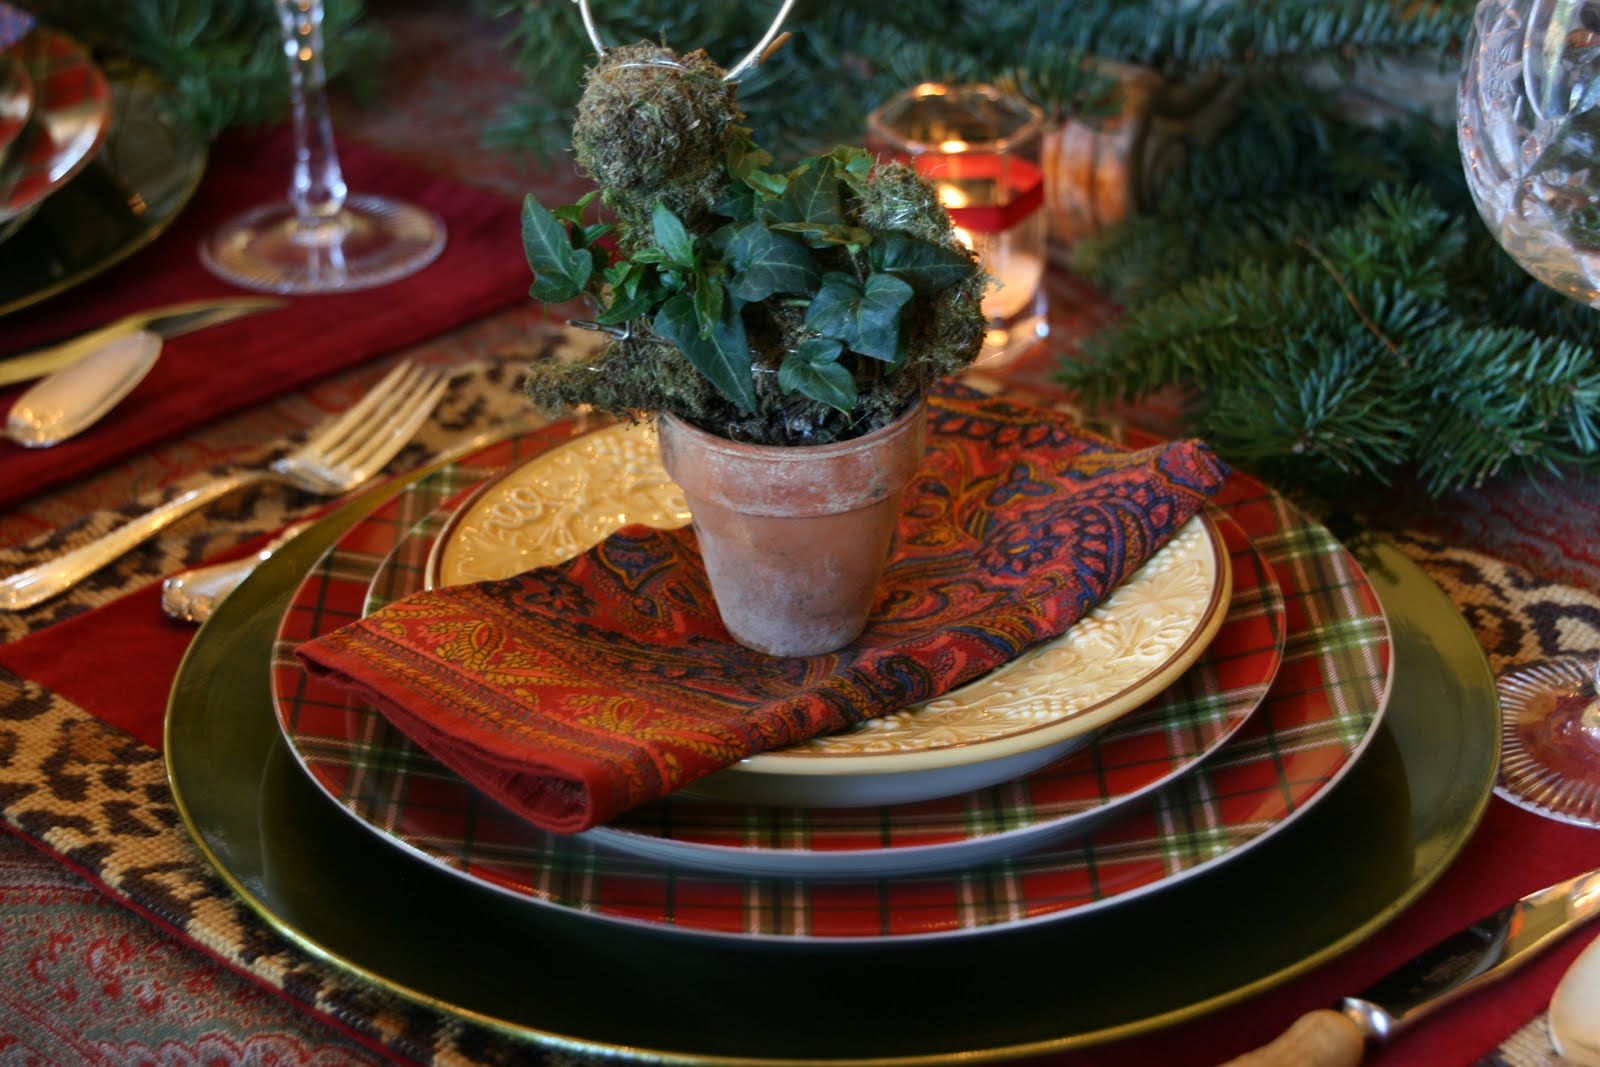 A Christmas Tablescape of Paisley Tartan and Leopard! & vignette design: A Christmas Tablescape of Paisley Tartan and Leopard!